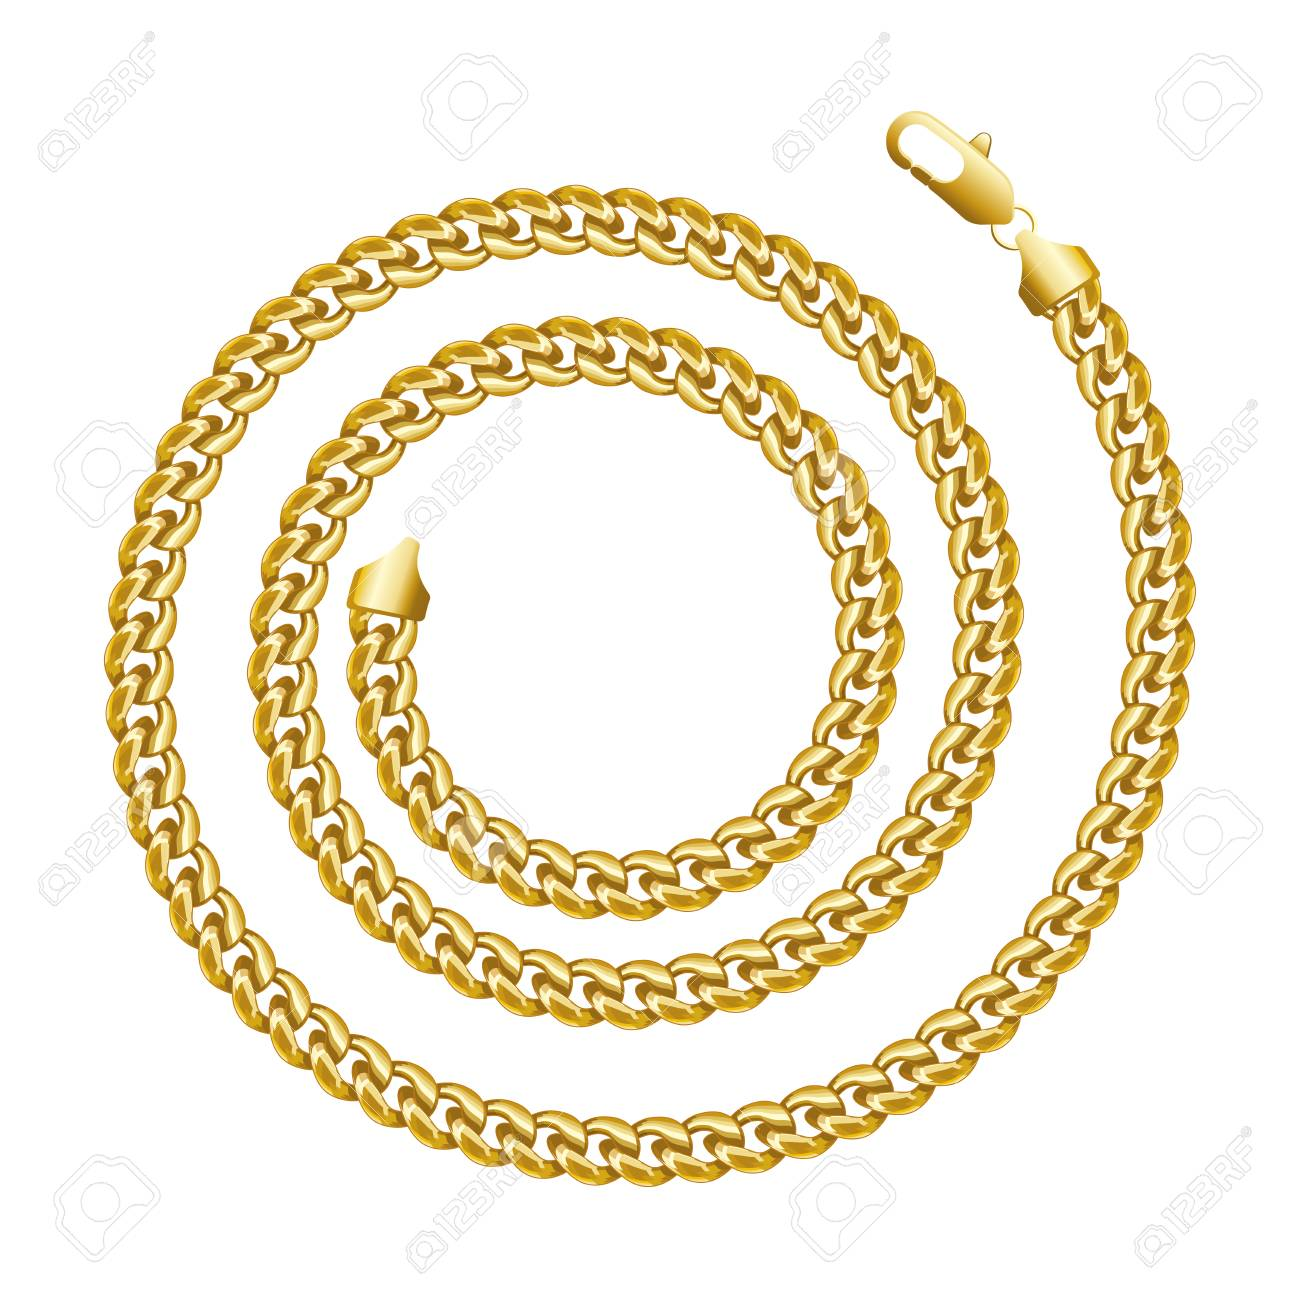 0239571251c7 Golden chain round spiral border frame. Wreath circle shape. Jewellery.  Realistic vector illustration